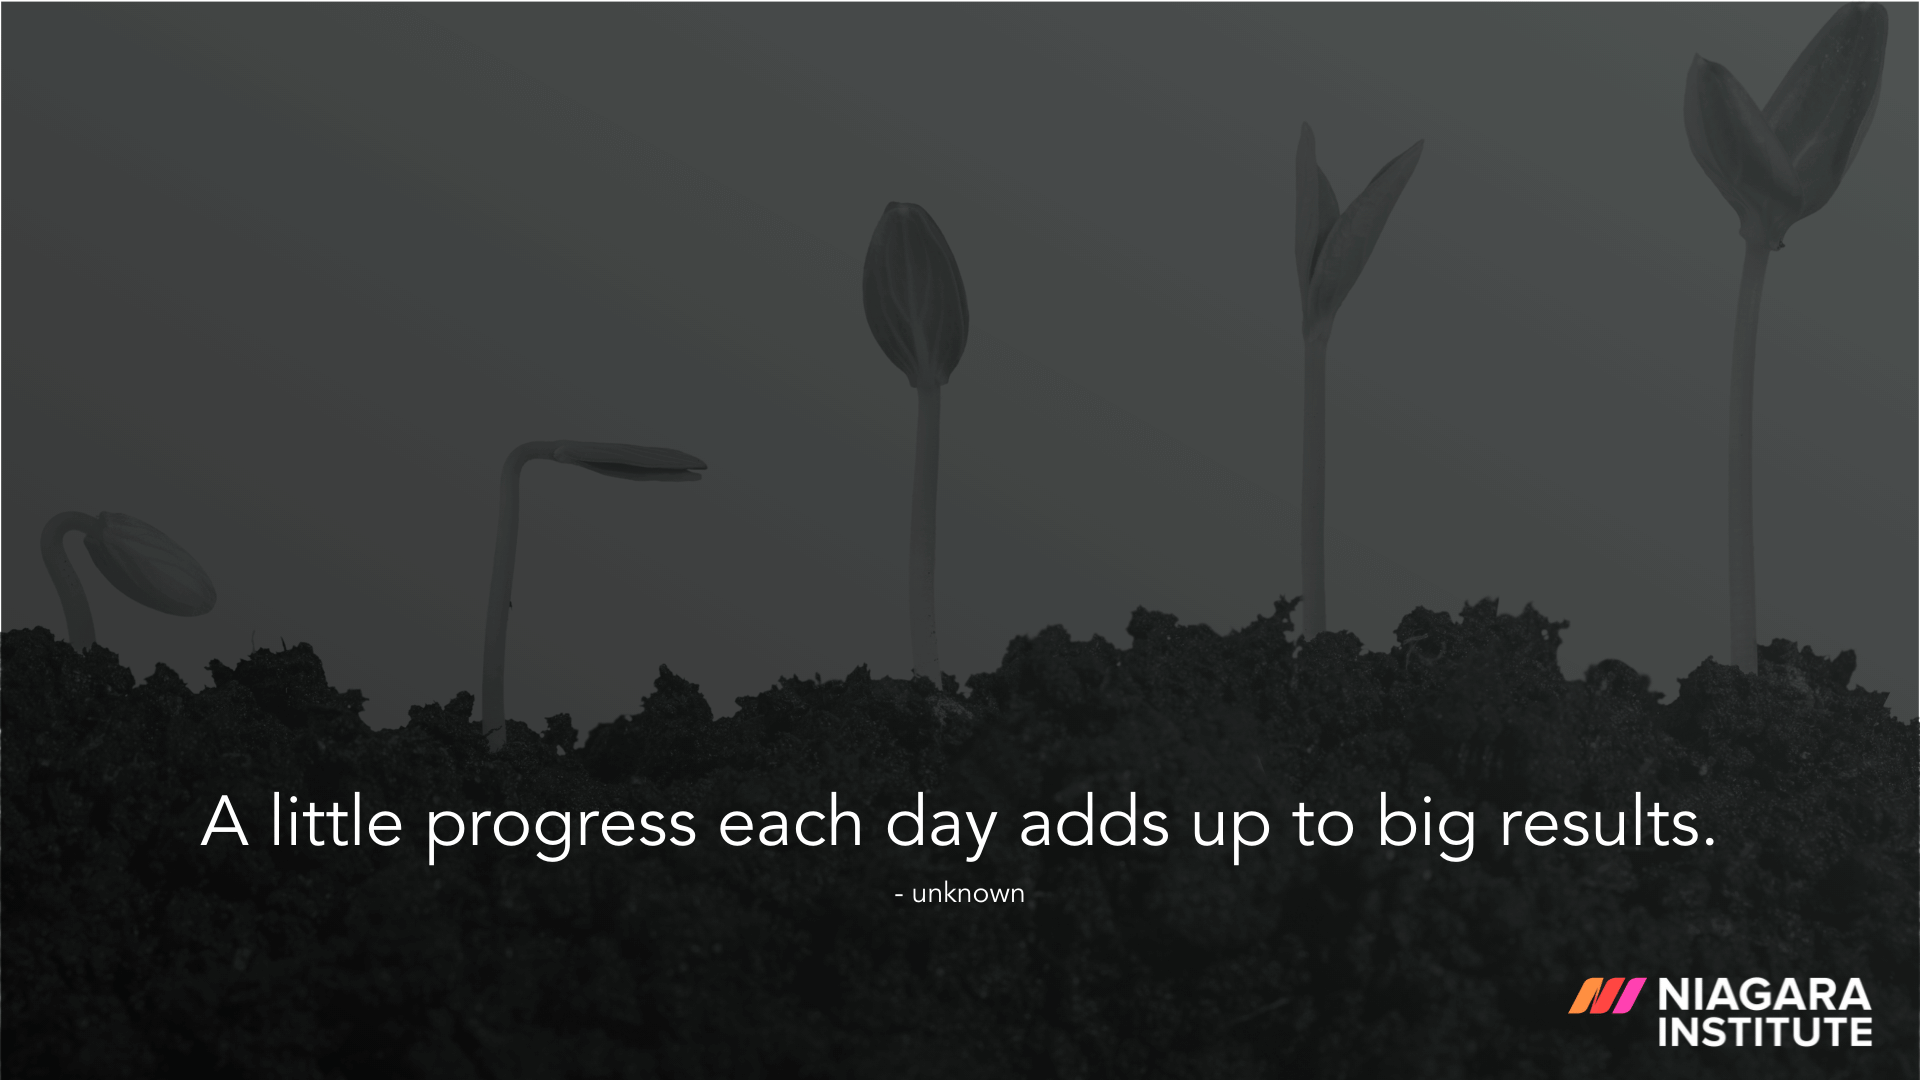 A little progress each day adds up to big results. - Unknown